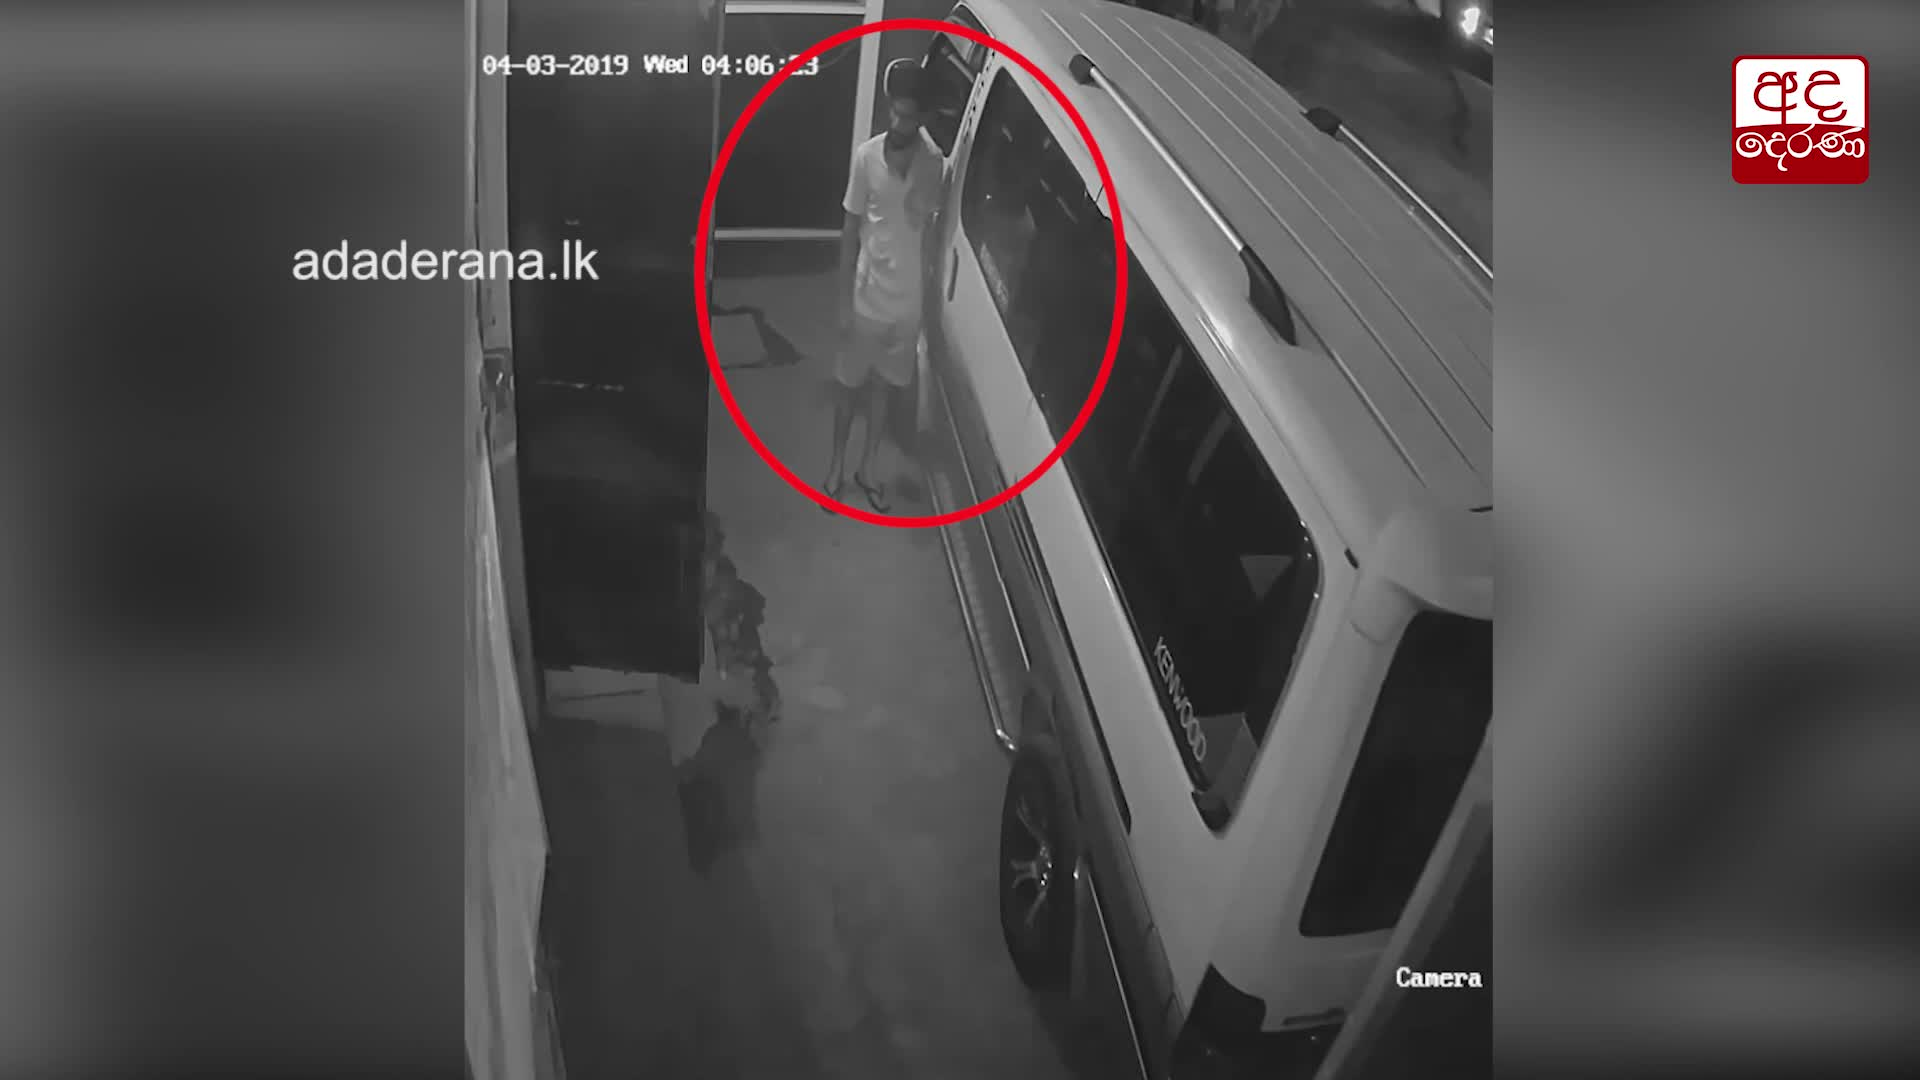 CCTV: van theft caught on camera in Dehiwala